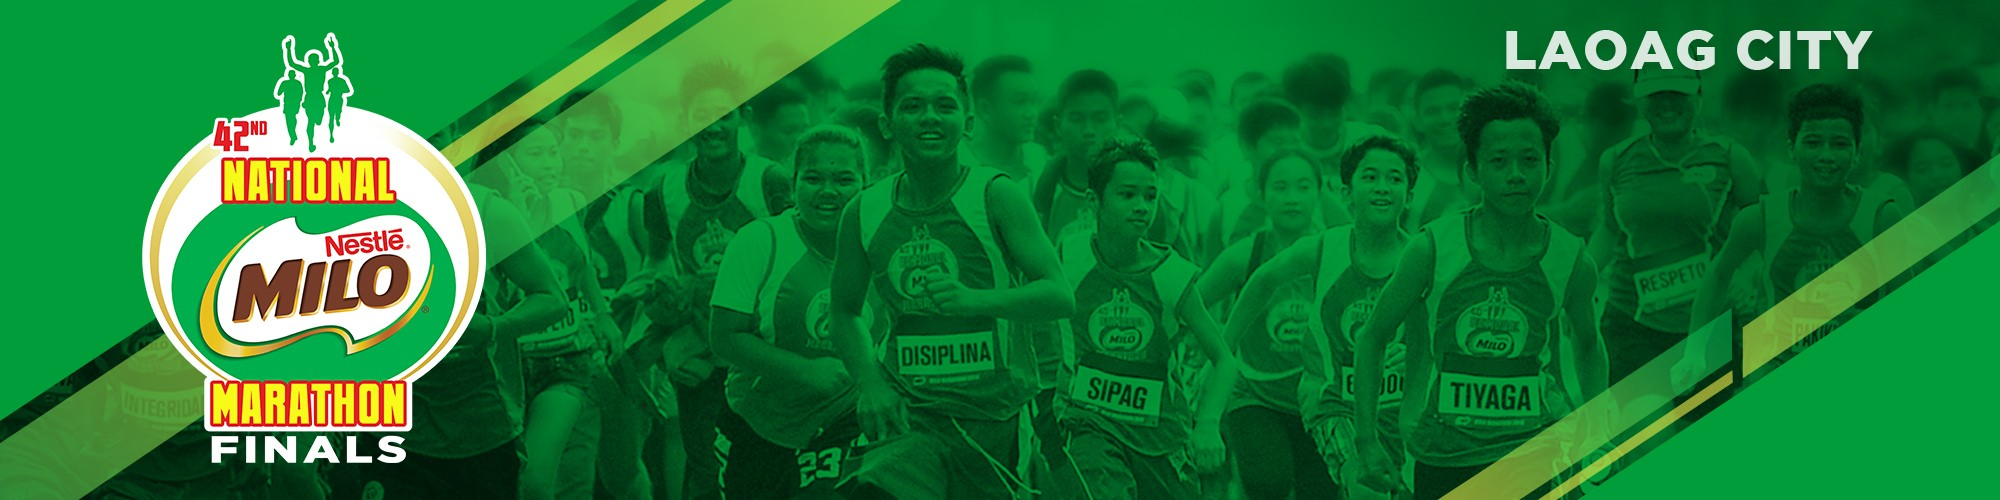 42nd National MILO Marathon - Laoag Leg